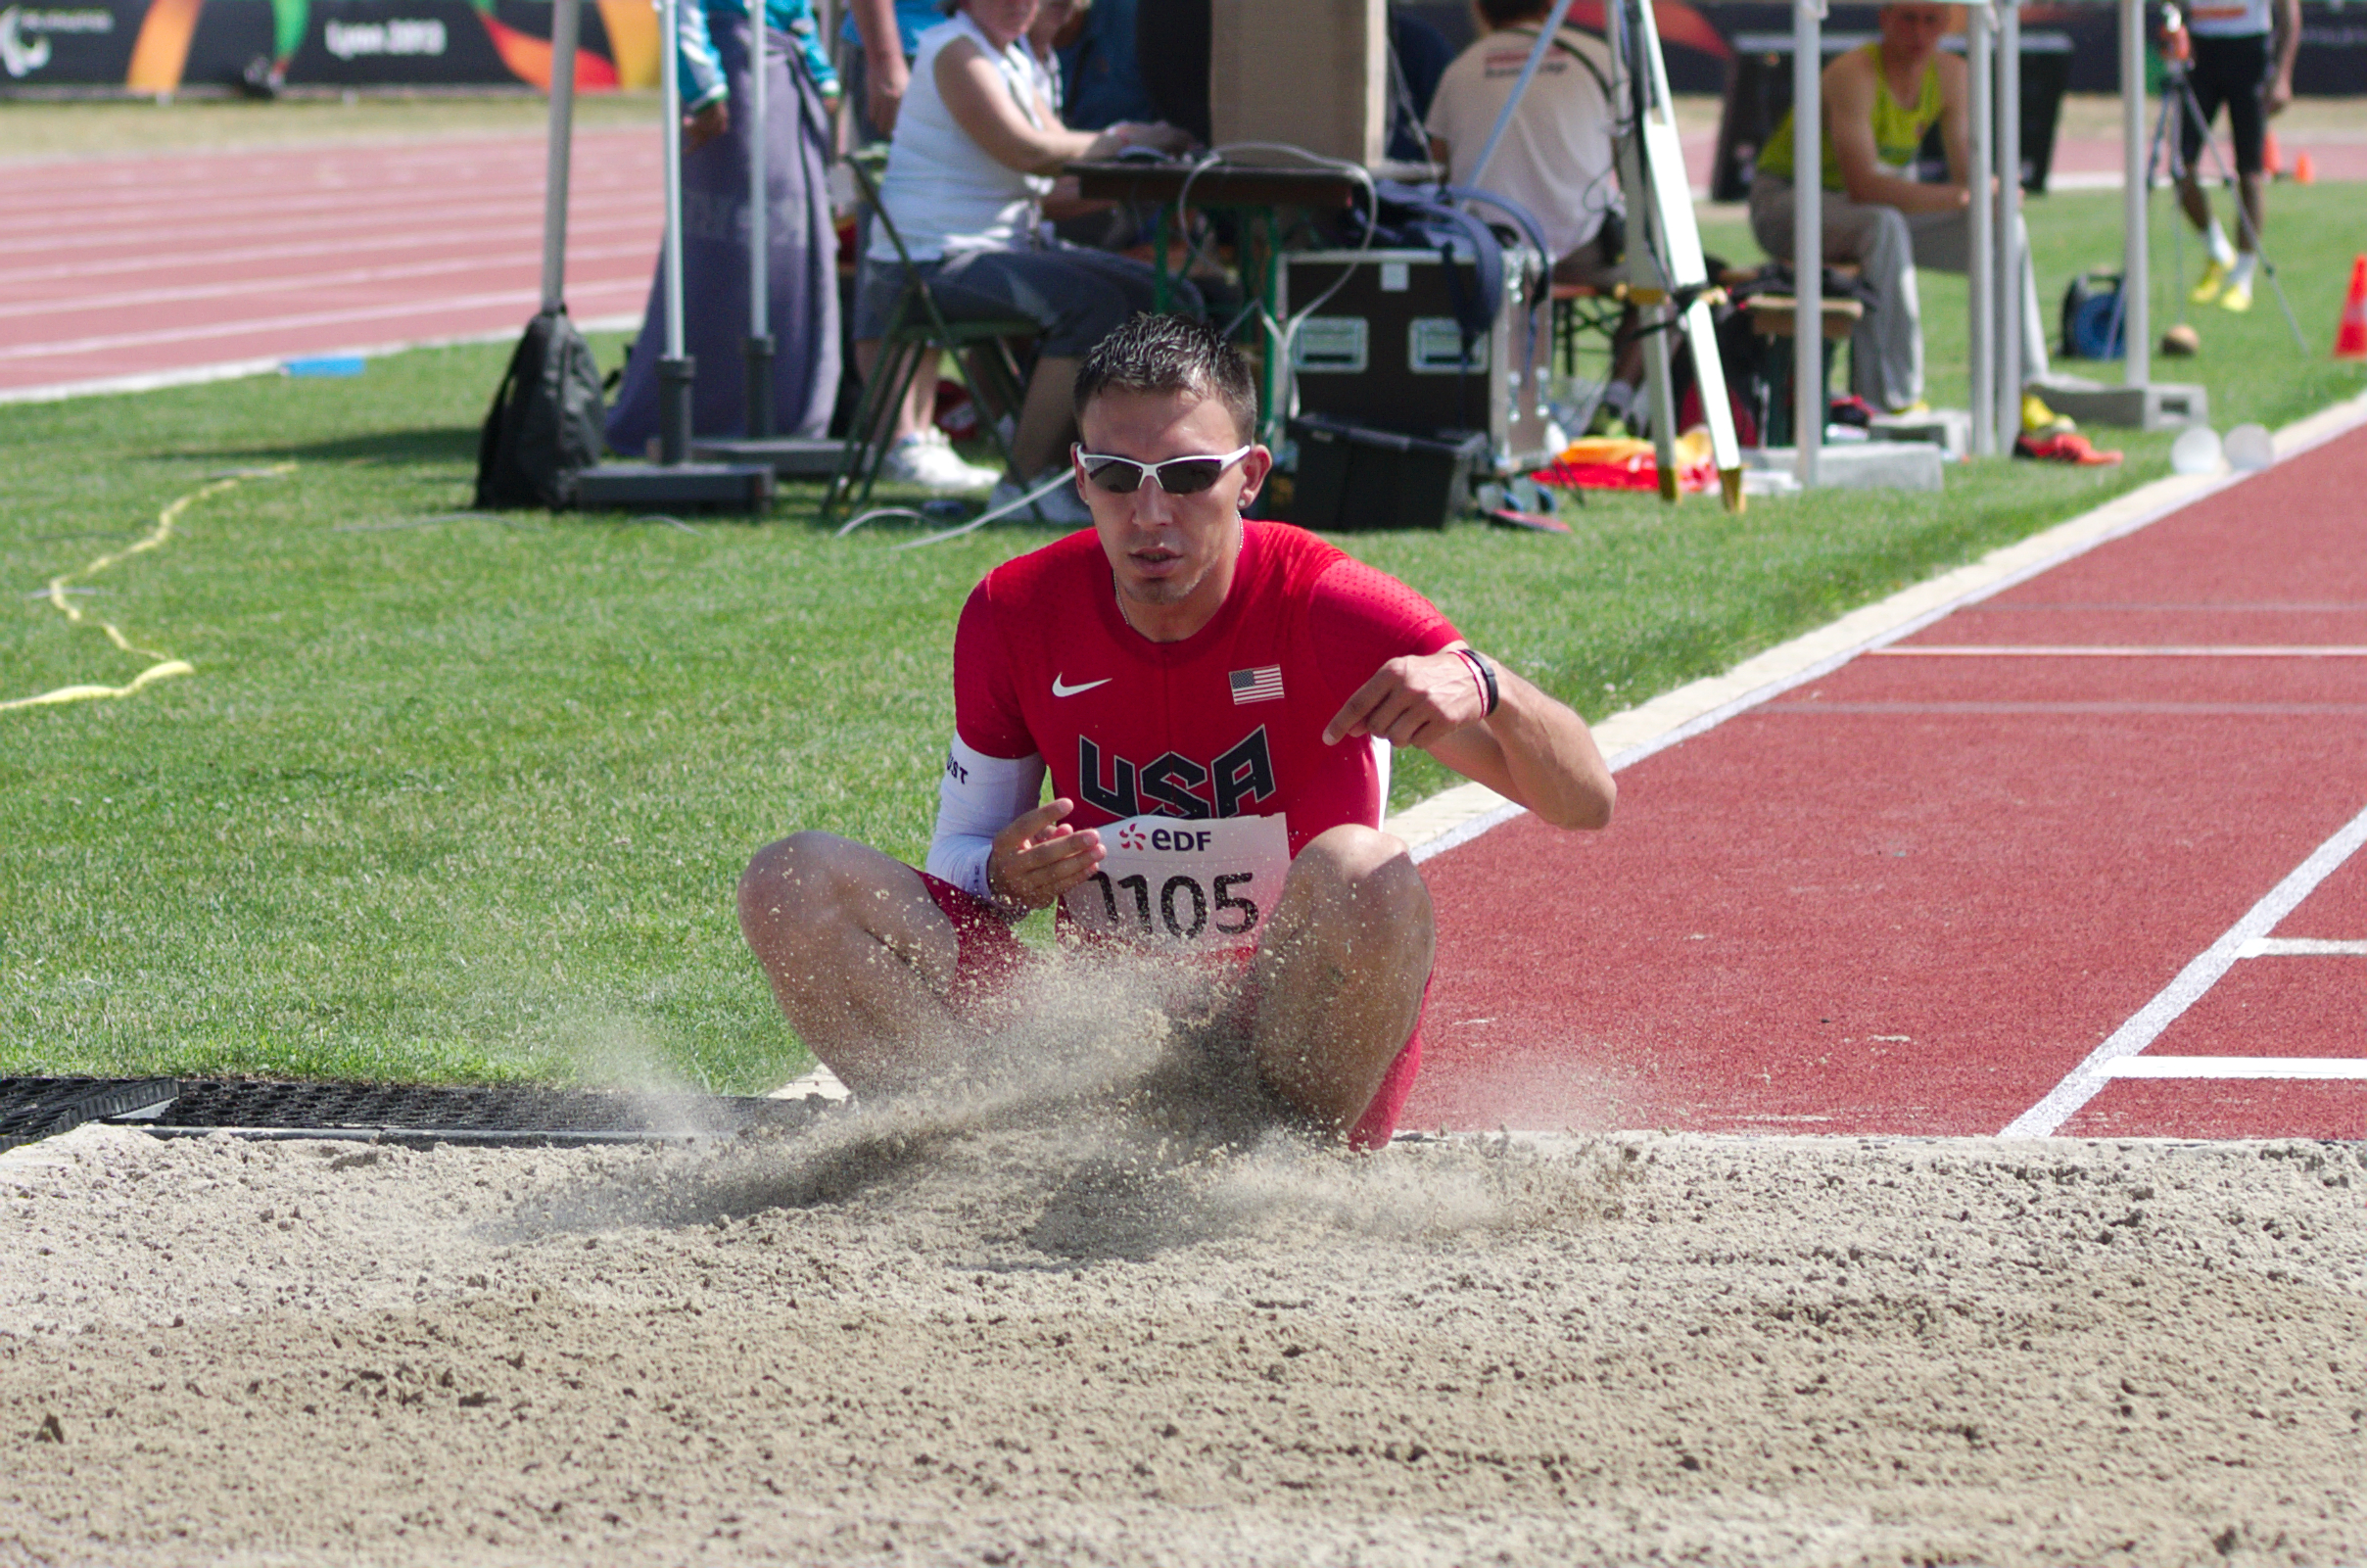 2013 IPC Athletics World Championships - 26072013 - Robbie Gaupp of the USA during the Men's Triple jump - T46 4